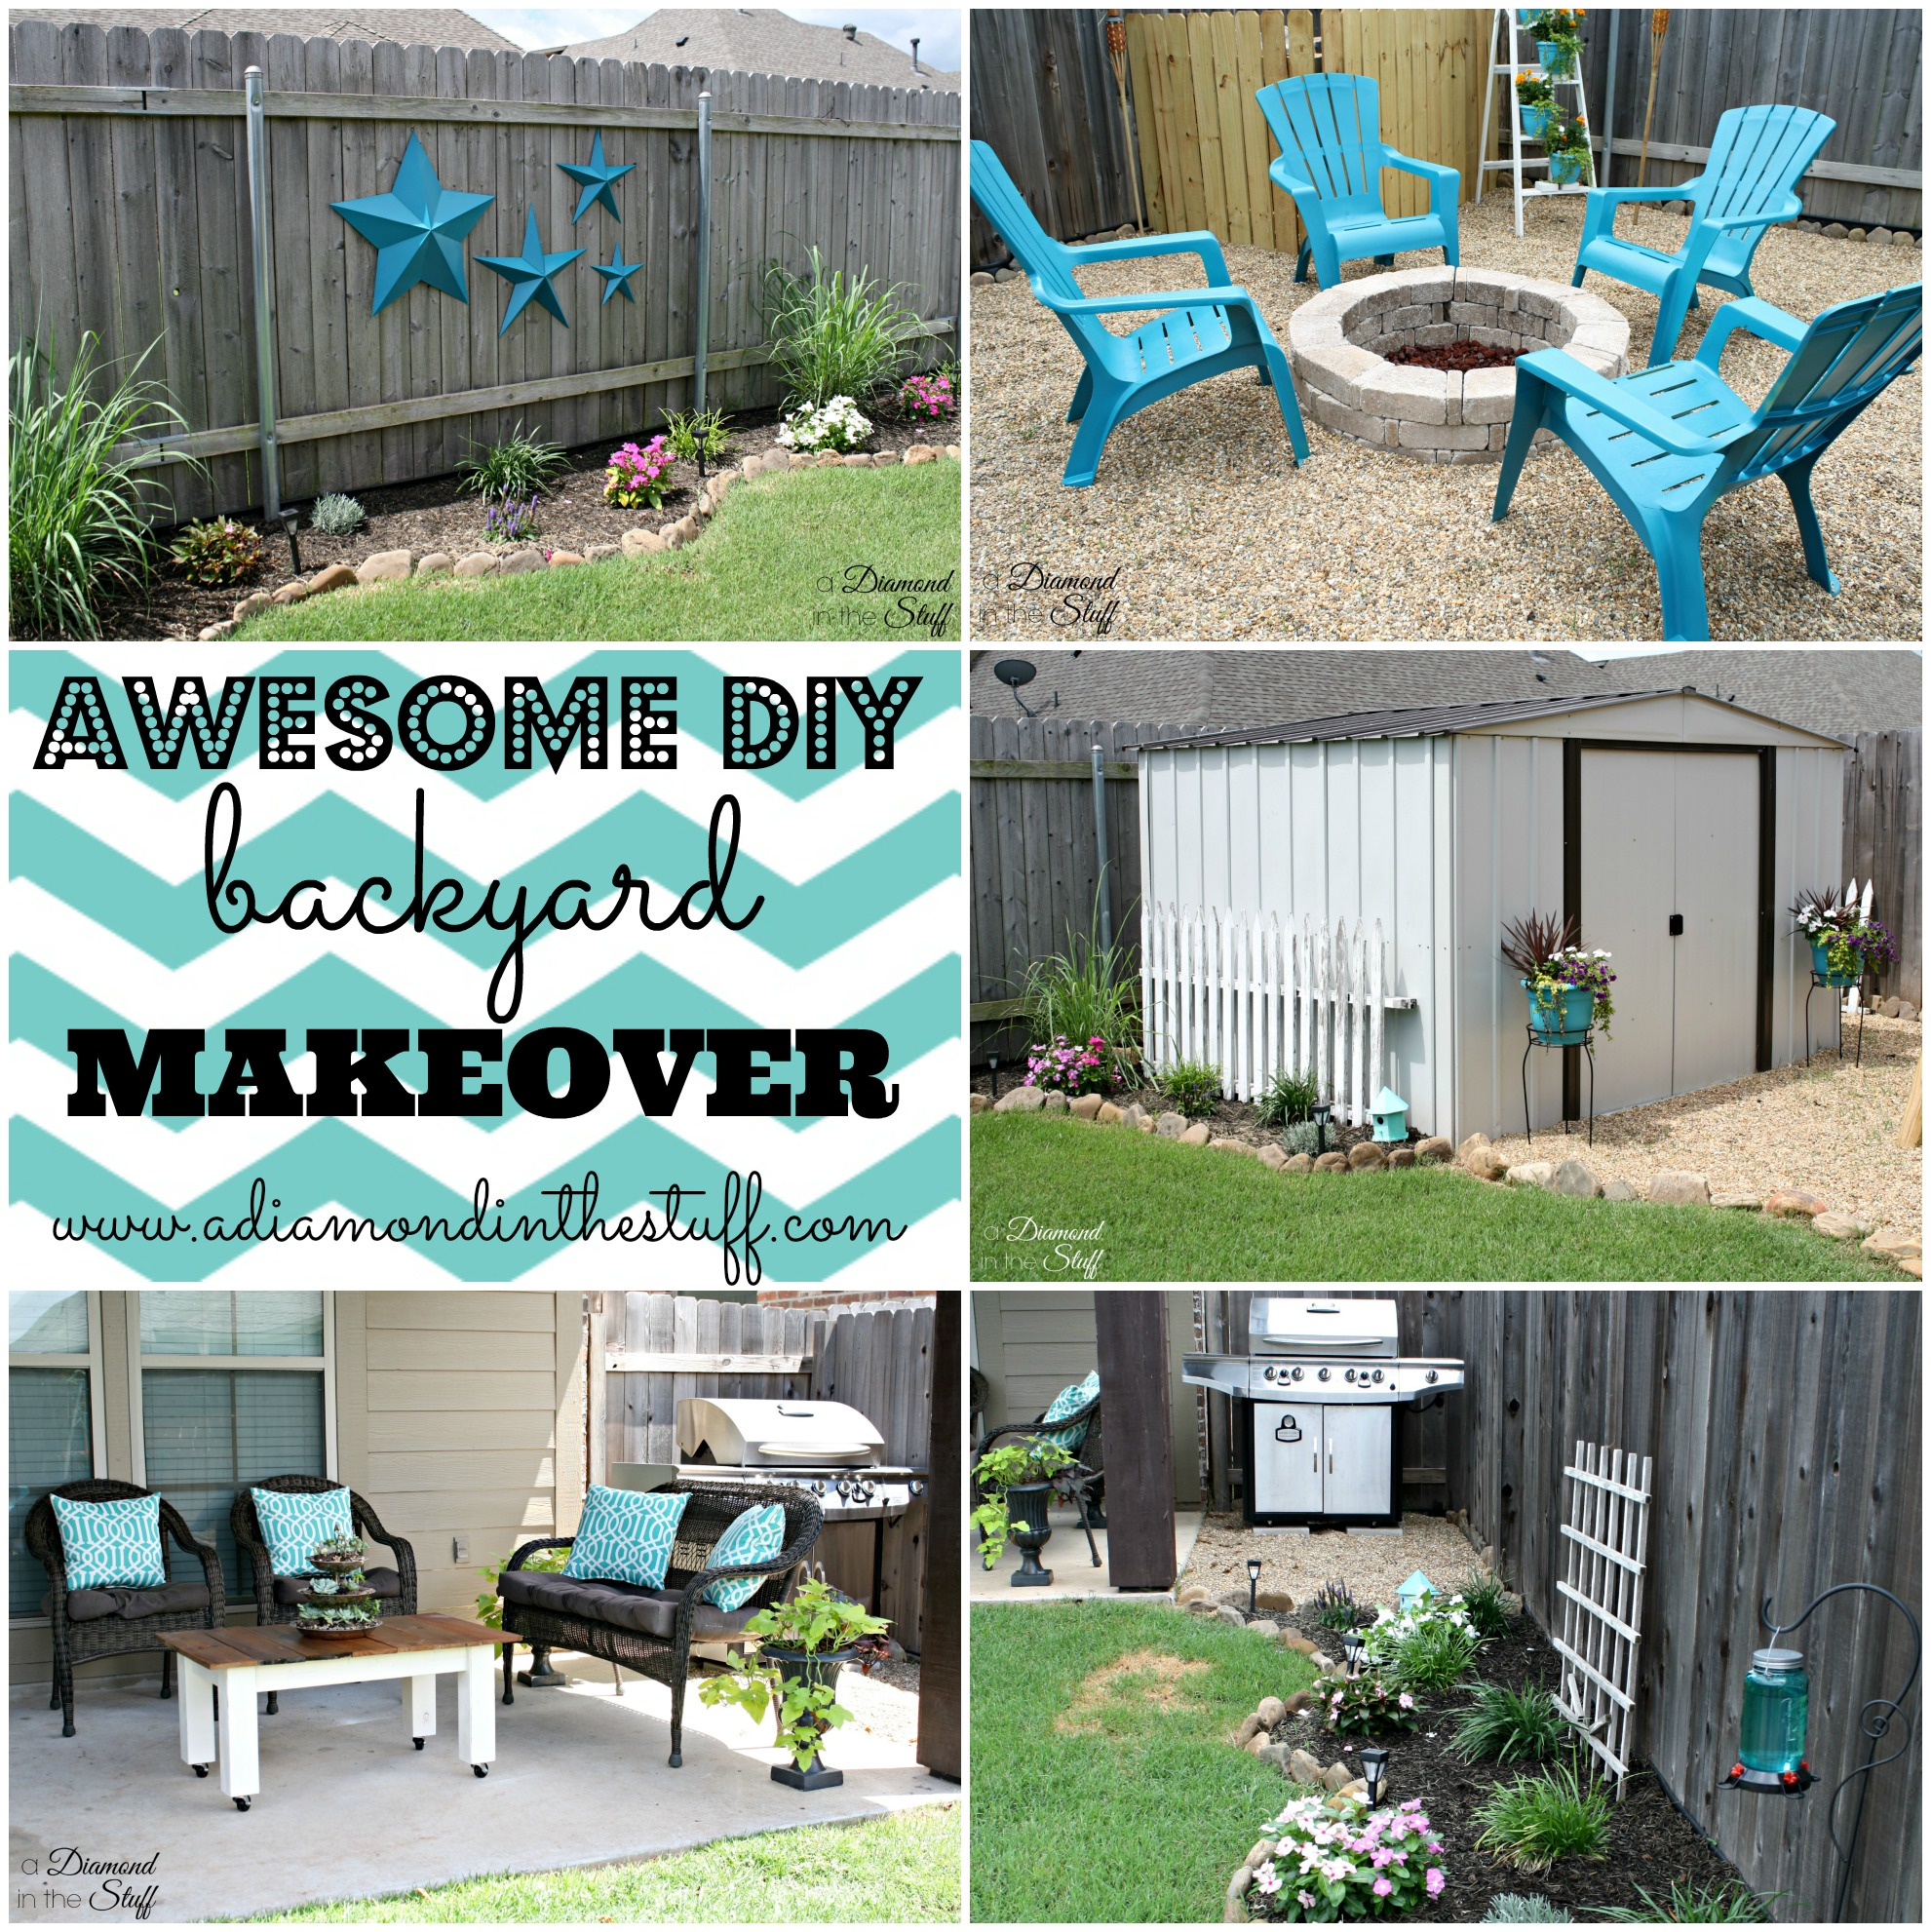 Backyard Makeover Ideas : Awesome DIY Backyard Makeover